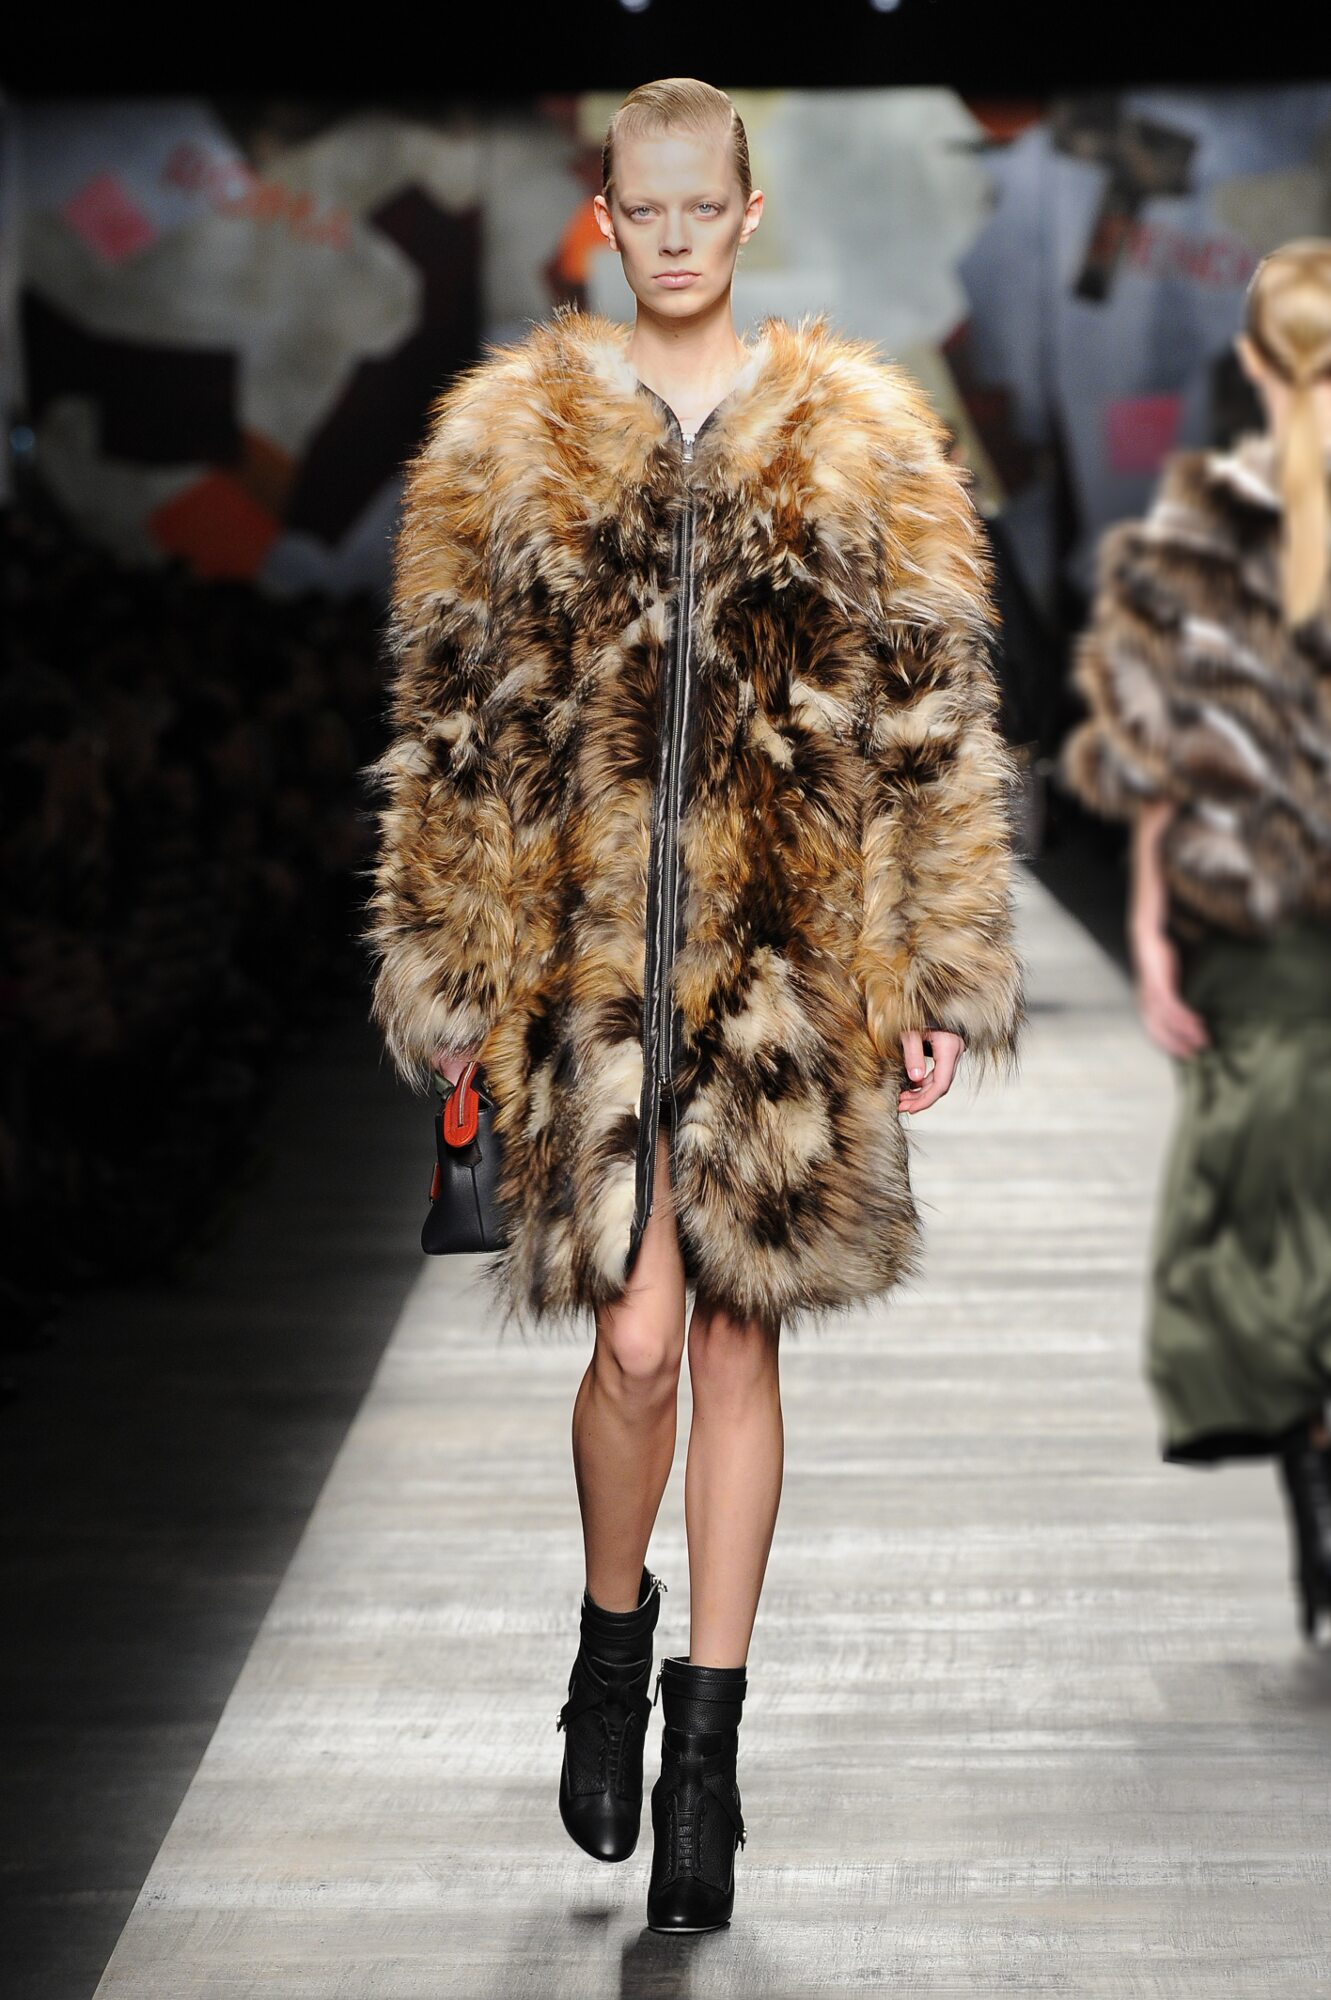 Catwalk Fashion Show 2014 Catwalk Fendi Fashion Show